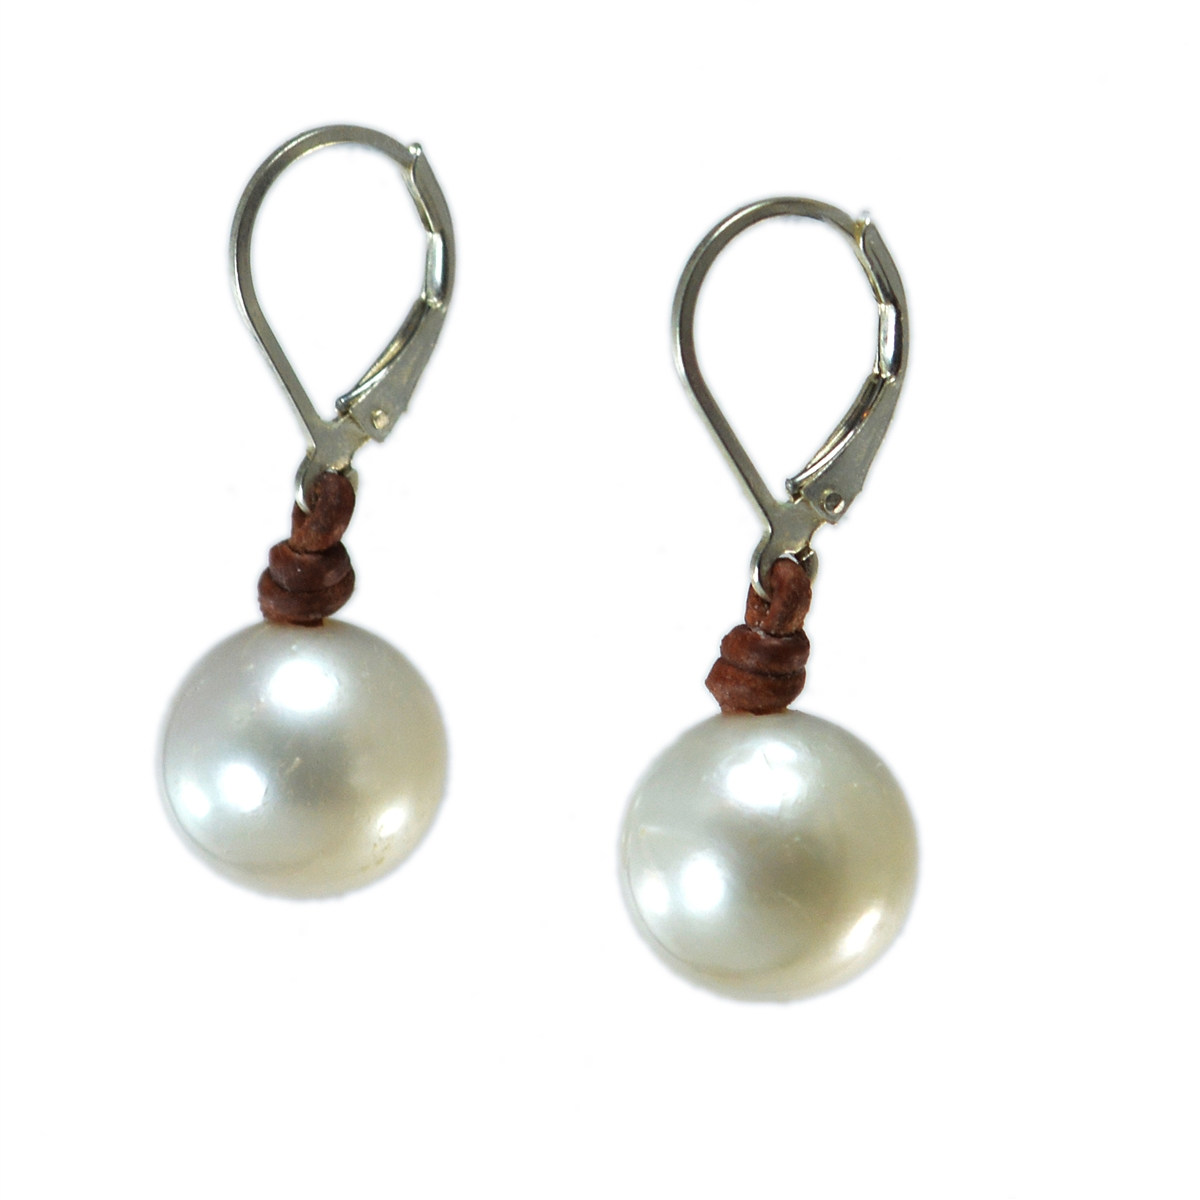 willow earrings stud single ksvhs jewellery pearl elegant